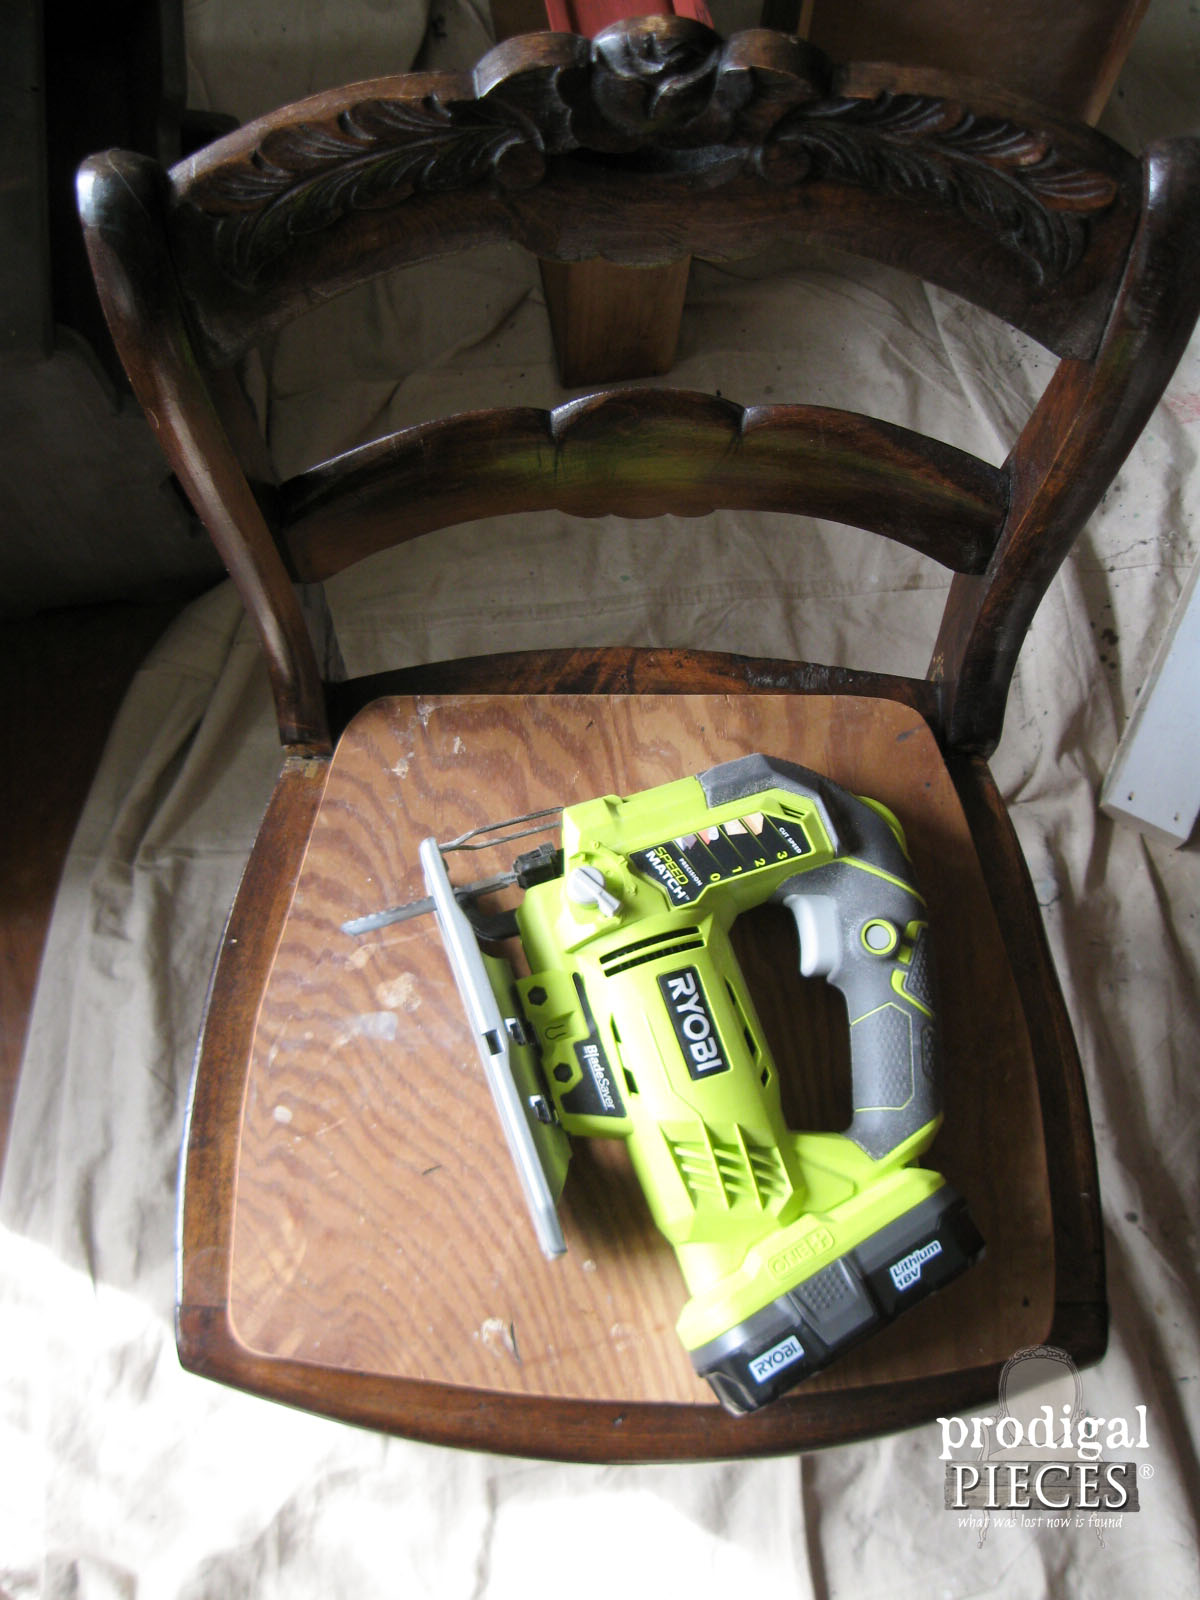 Ryobi Jigsaw Sitting on New Chair Seat | Prodigal Pieces | www.prodigalpieces.com